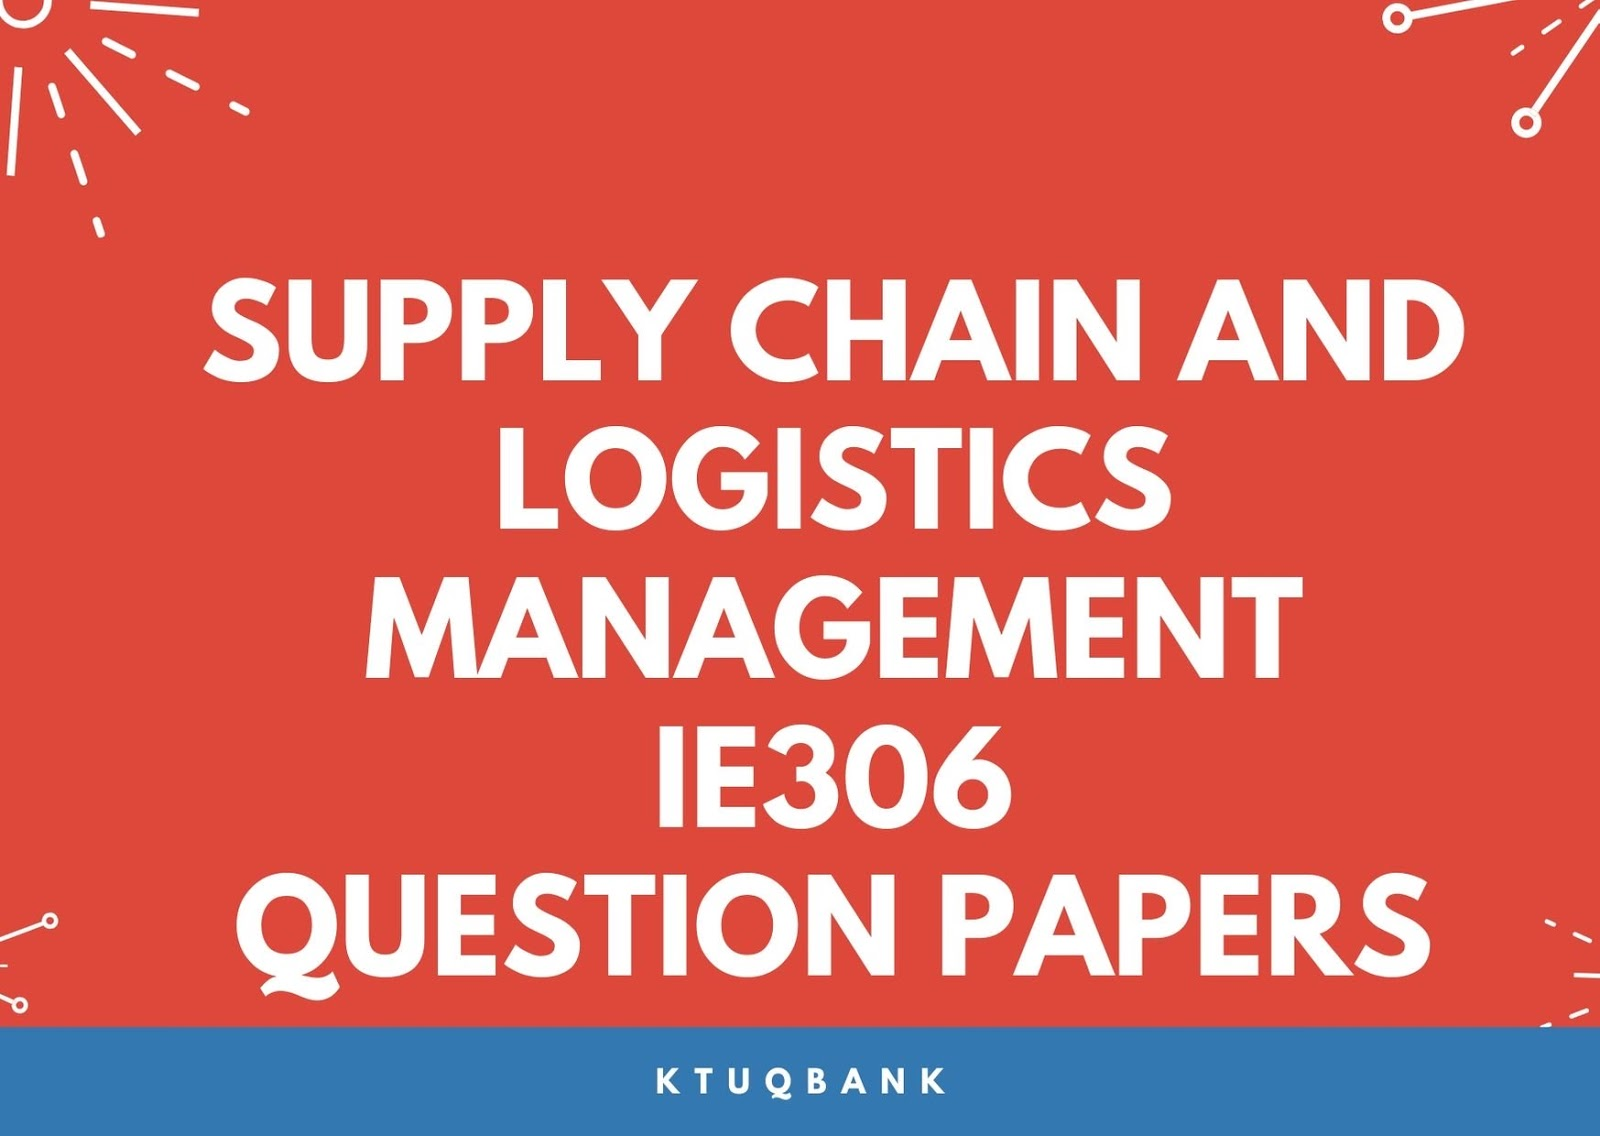 Supply Chain and Logistics Management | IE306 | Question Papers (2015 batch)